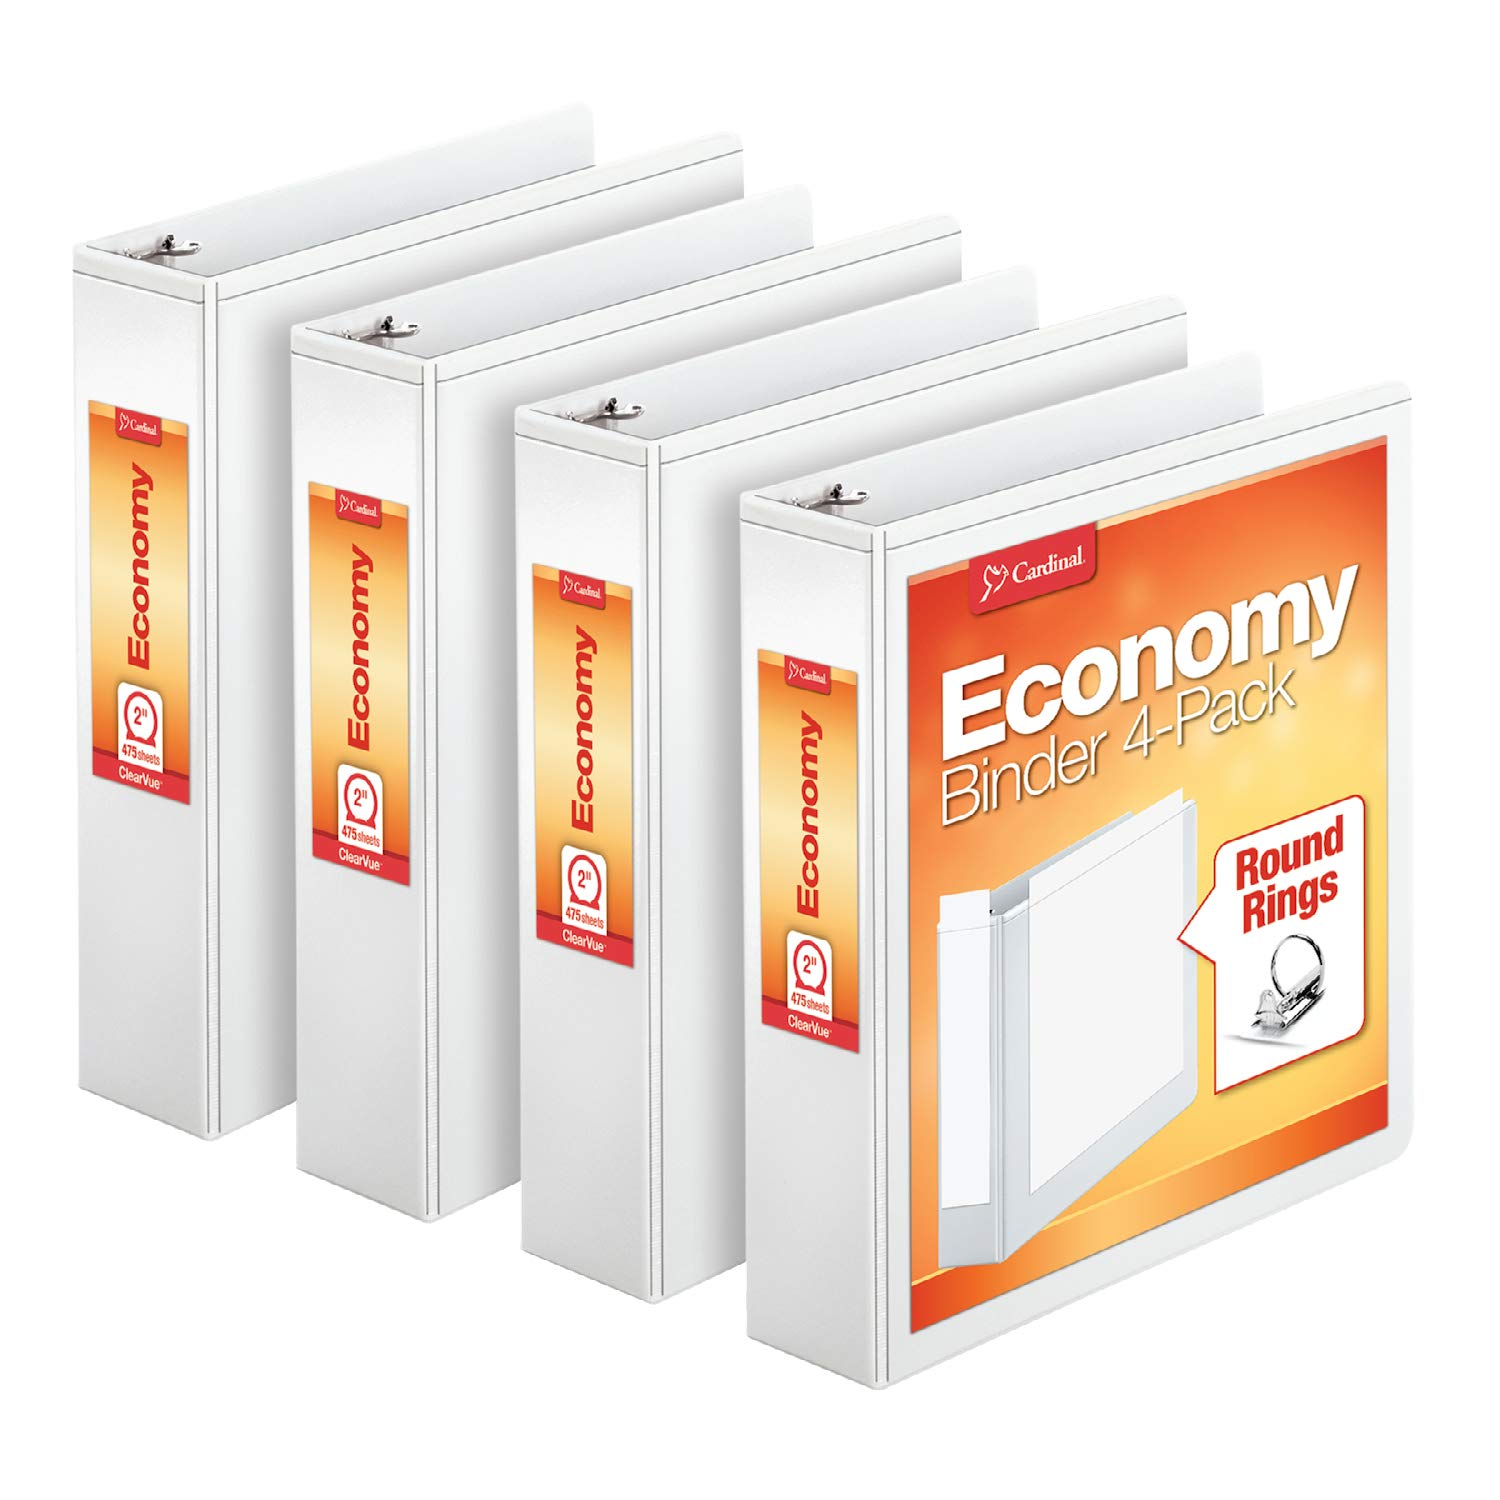 Cardinal Economy 2'' Round-Ring Presentation View Binders, 3-Ring Binder, Holds 475 Sheets, Nonstick Poly Material, PVC-Free, White, 4-Pack (79520)